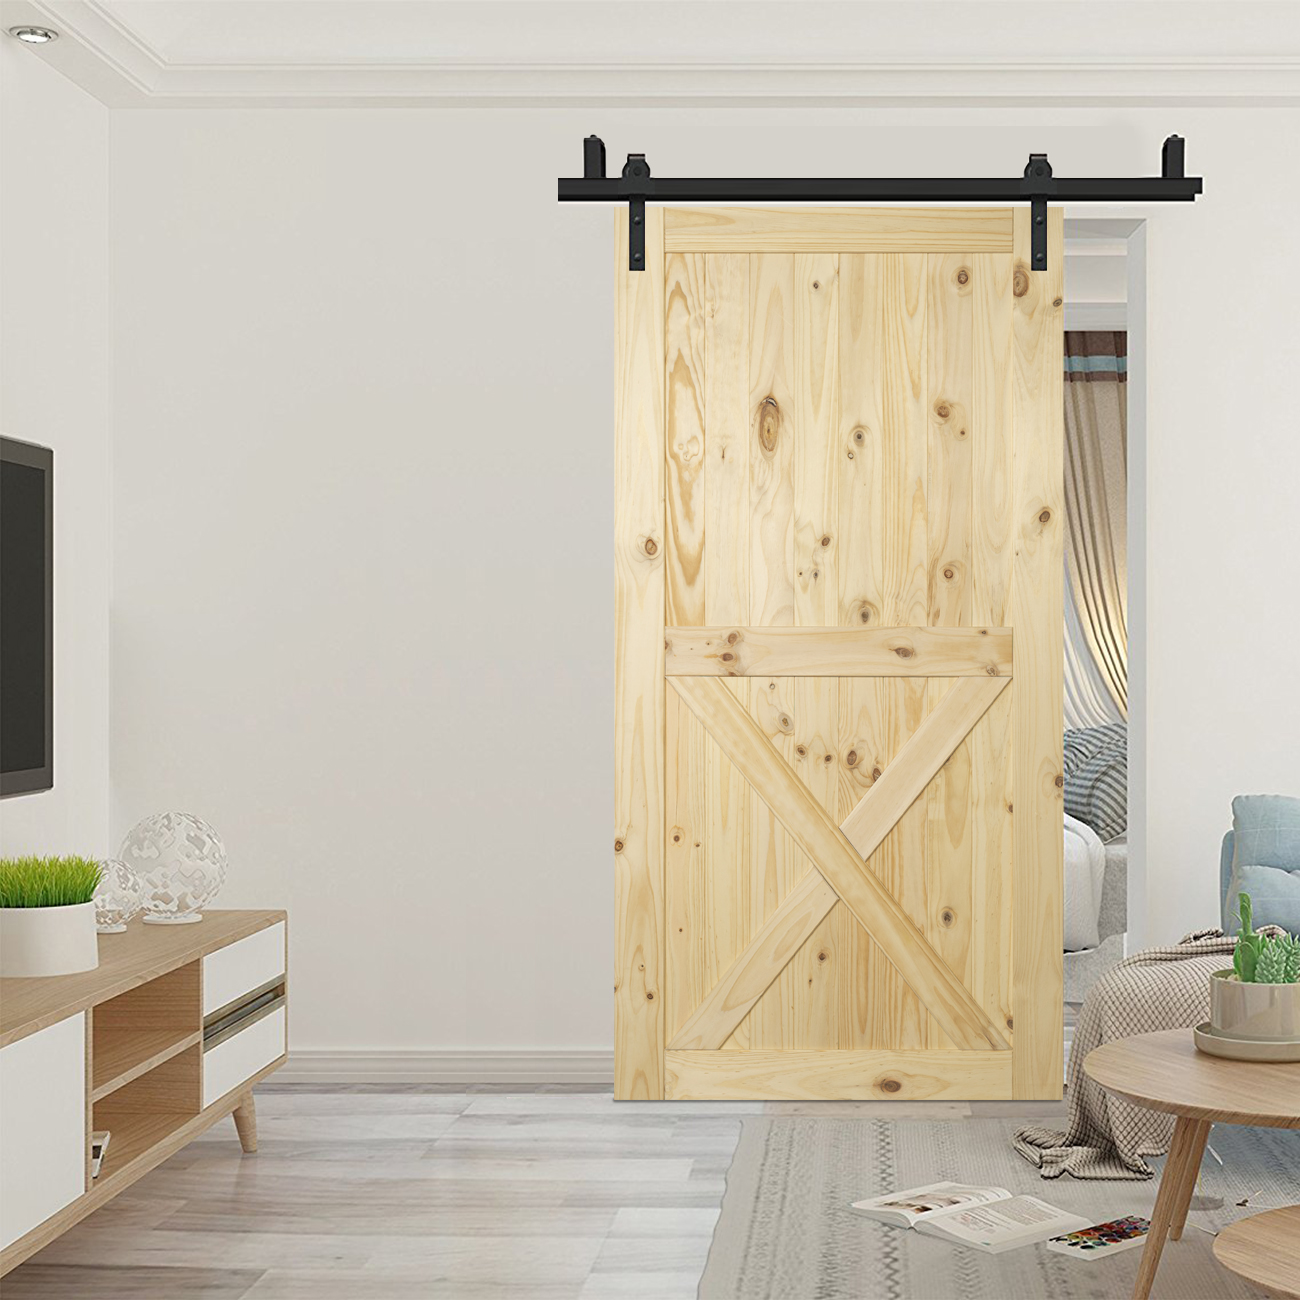 42 X 84 Inches Natural Wood Pine Unfinished Sliding Barn Door Diy